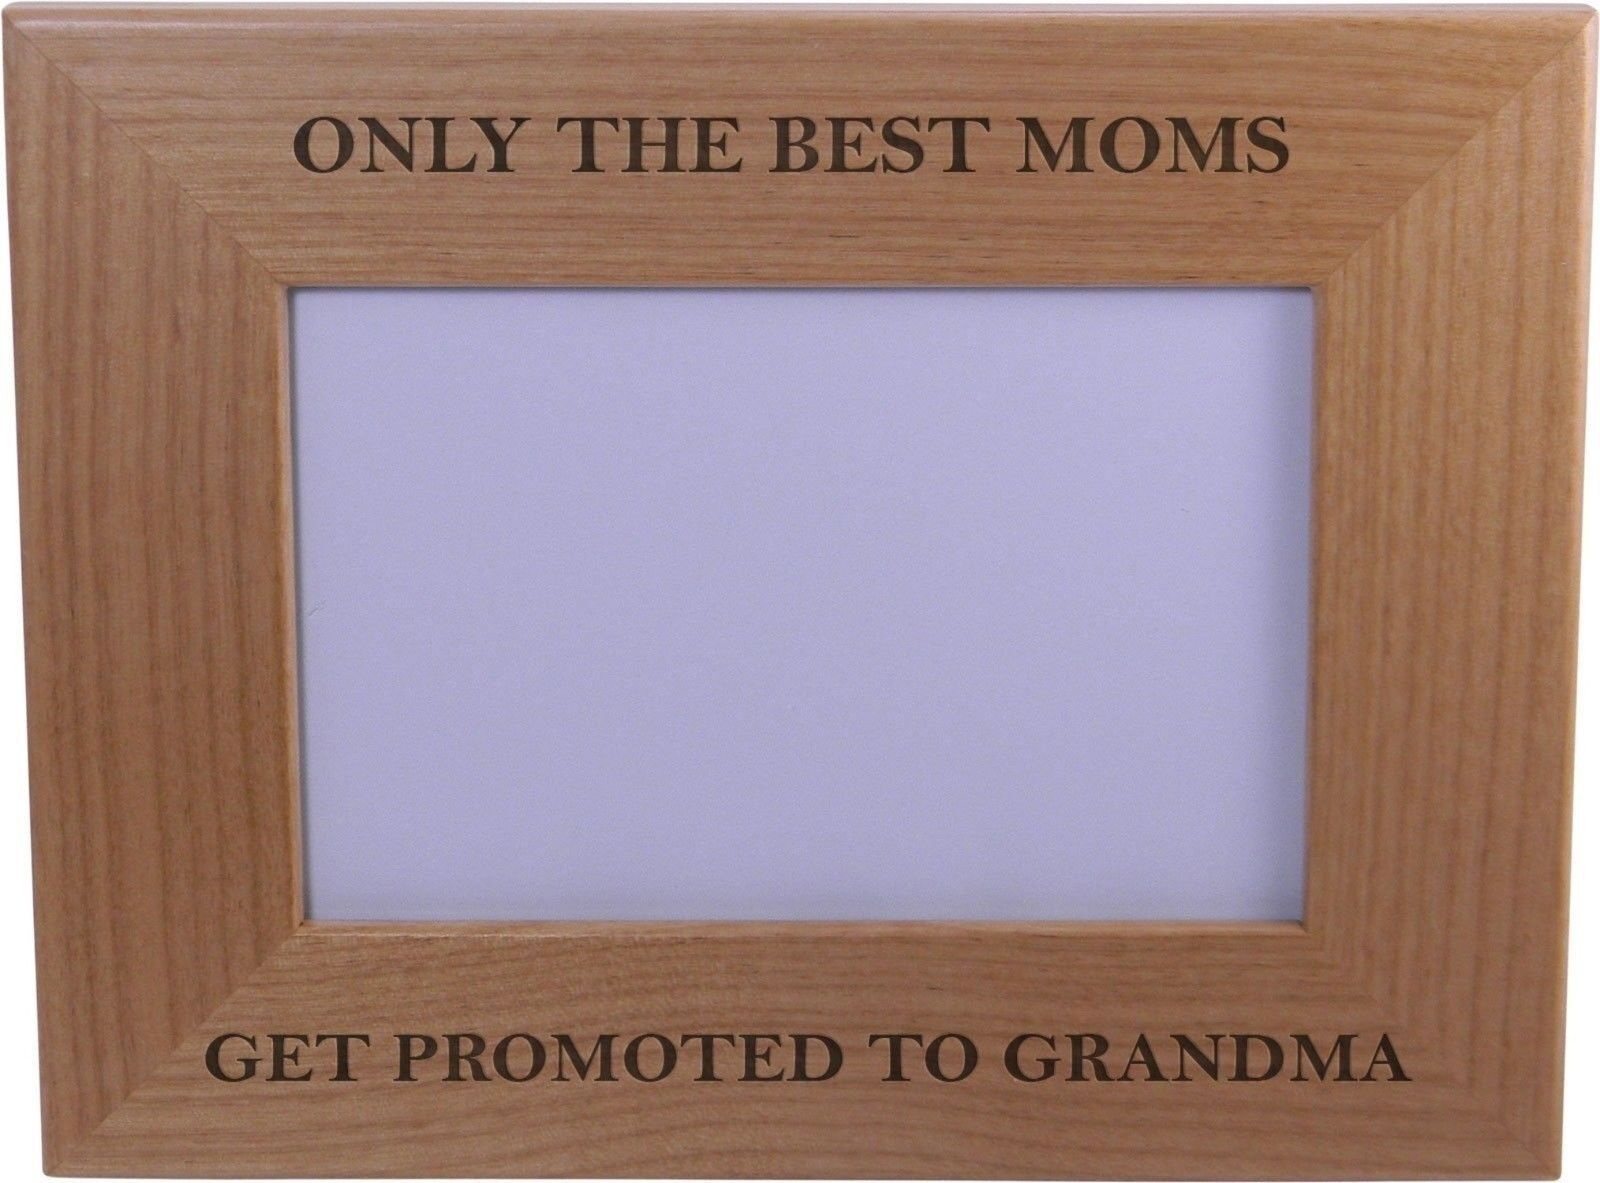 Only The Best Moms Get Promoted To Grandma 4x6 Inch Wood Picture